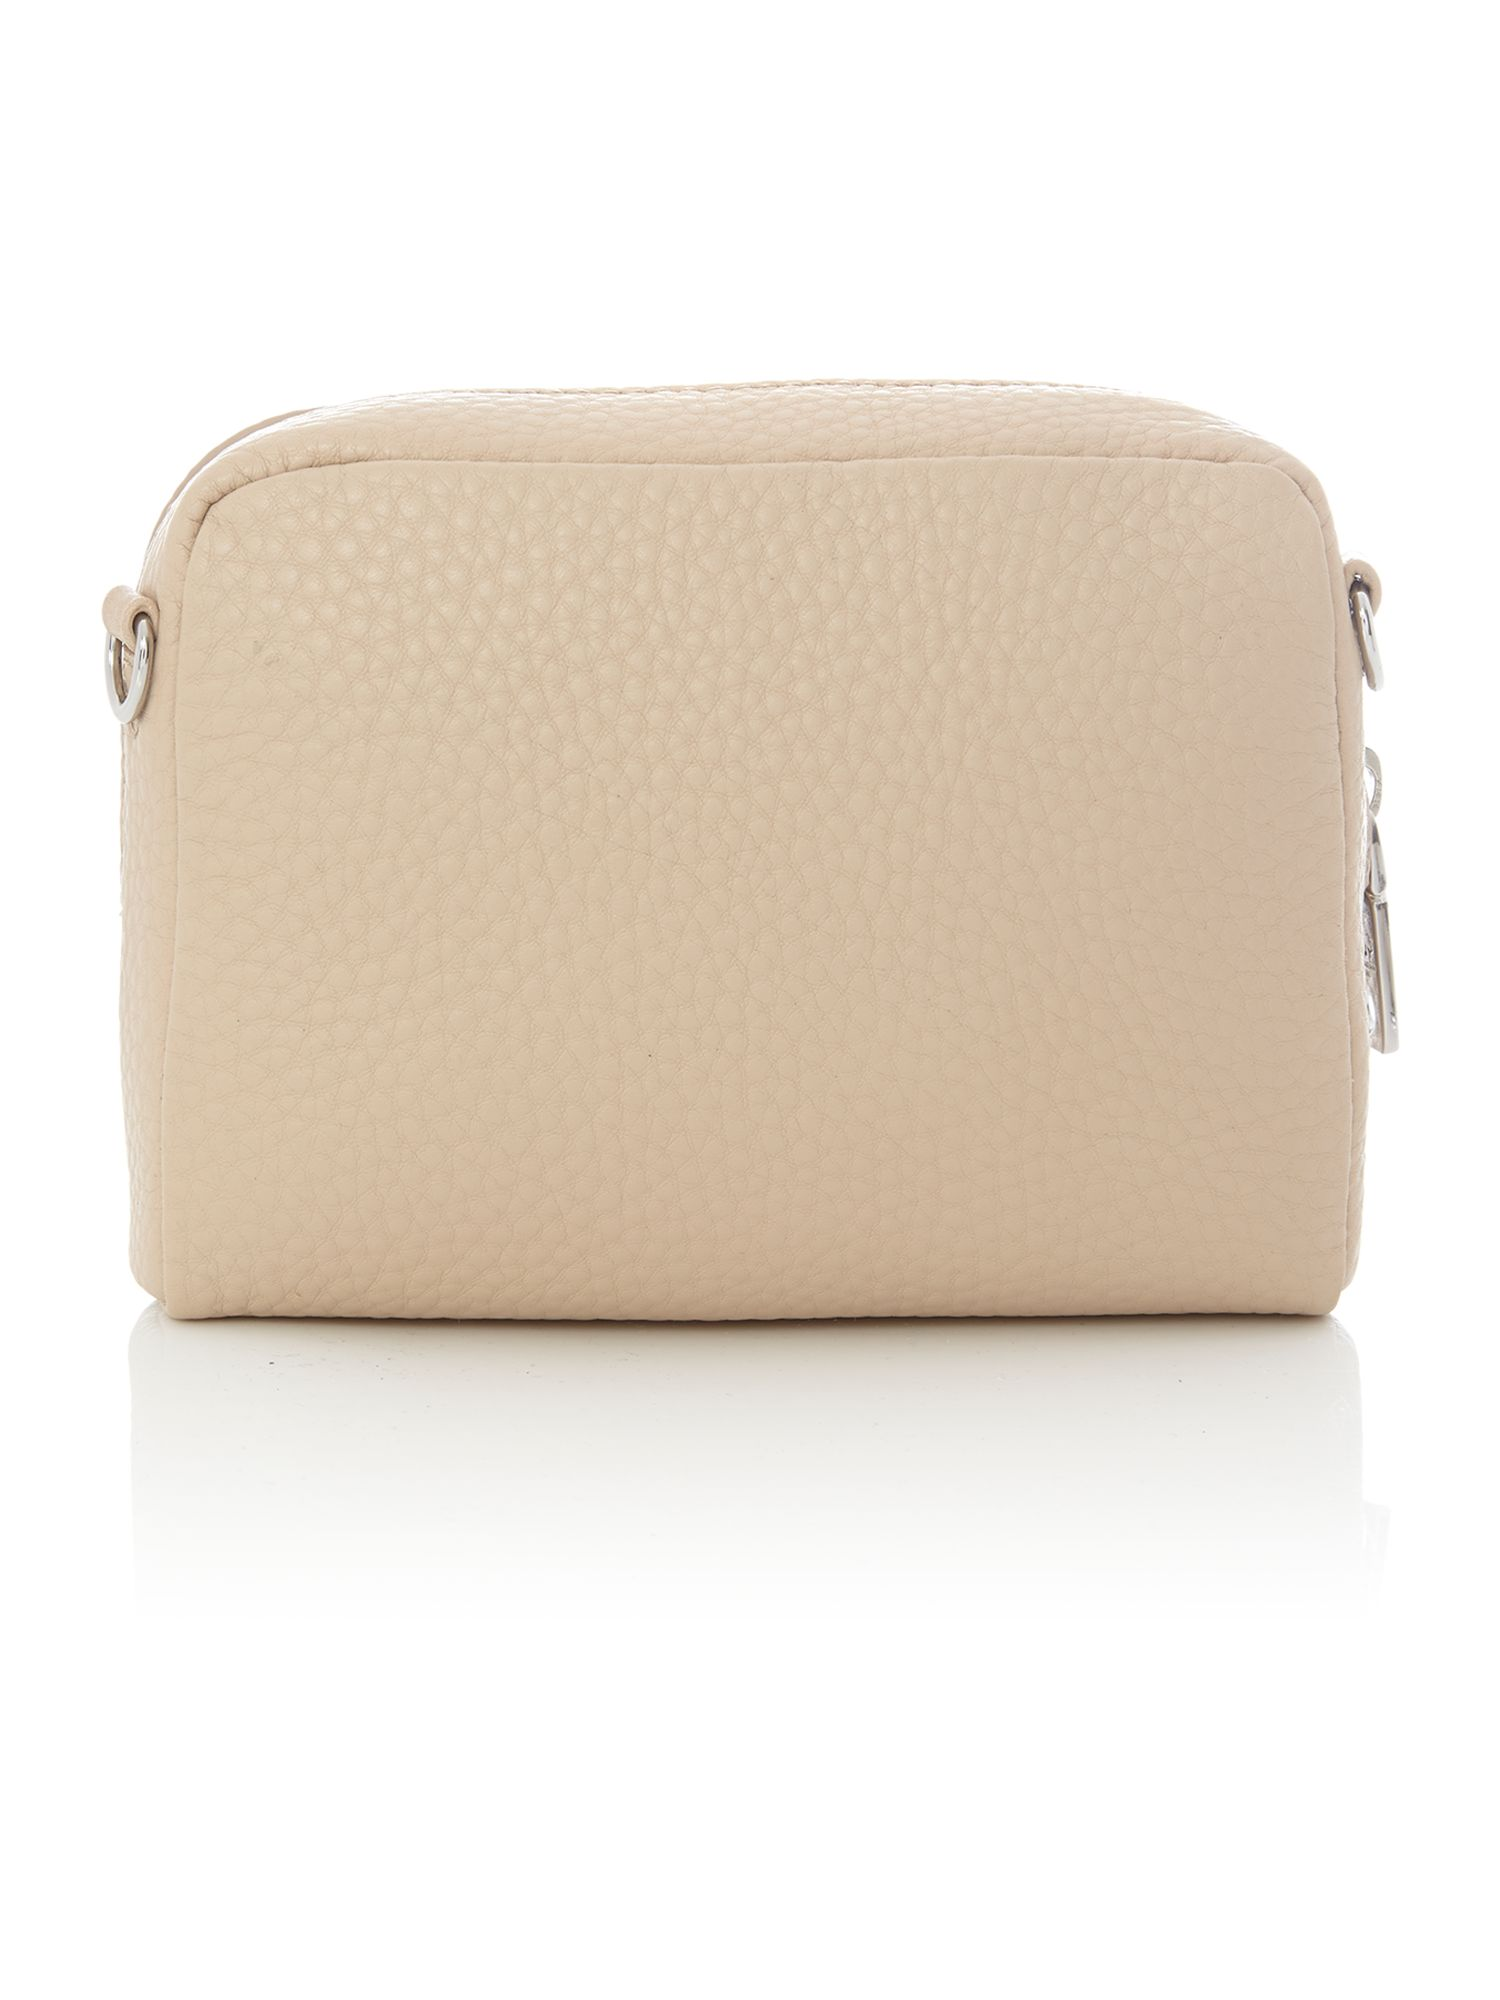 Tribeca soft tan small tote bag